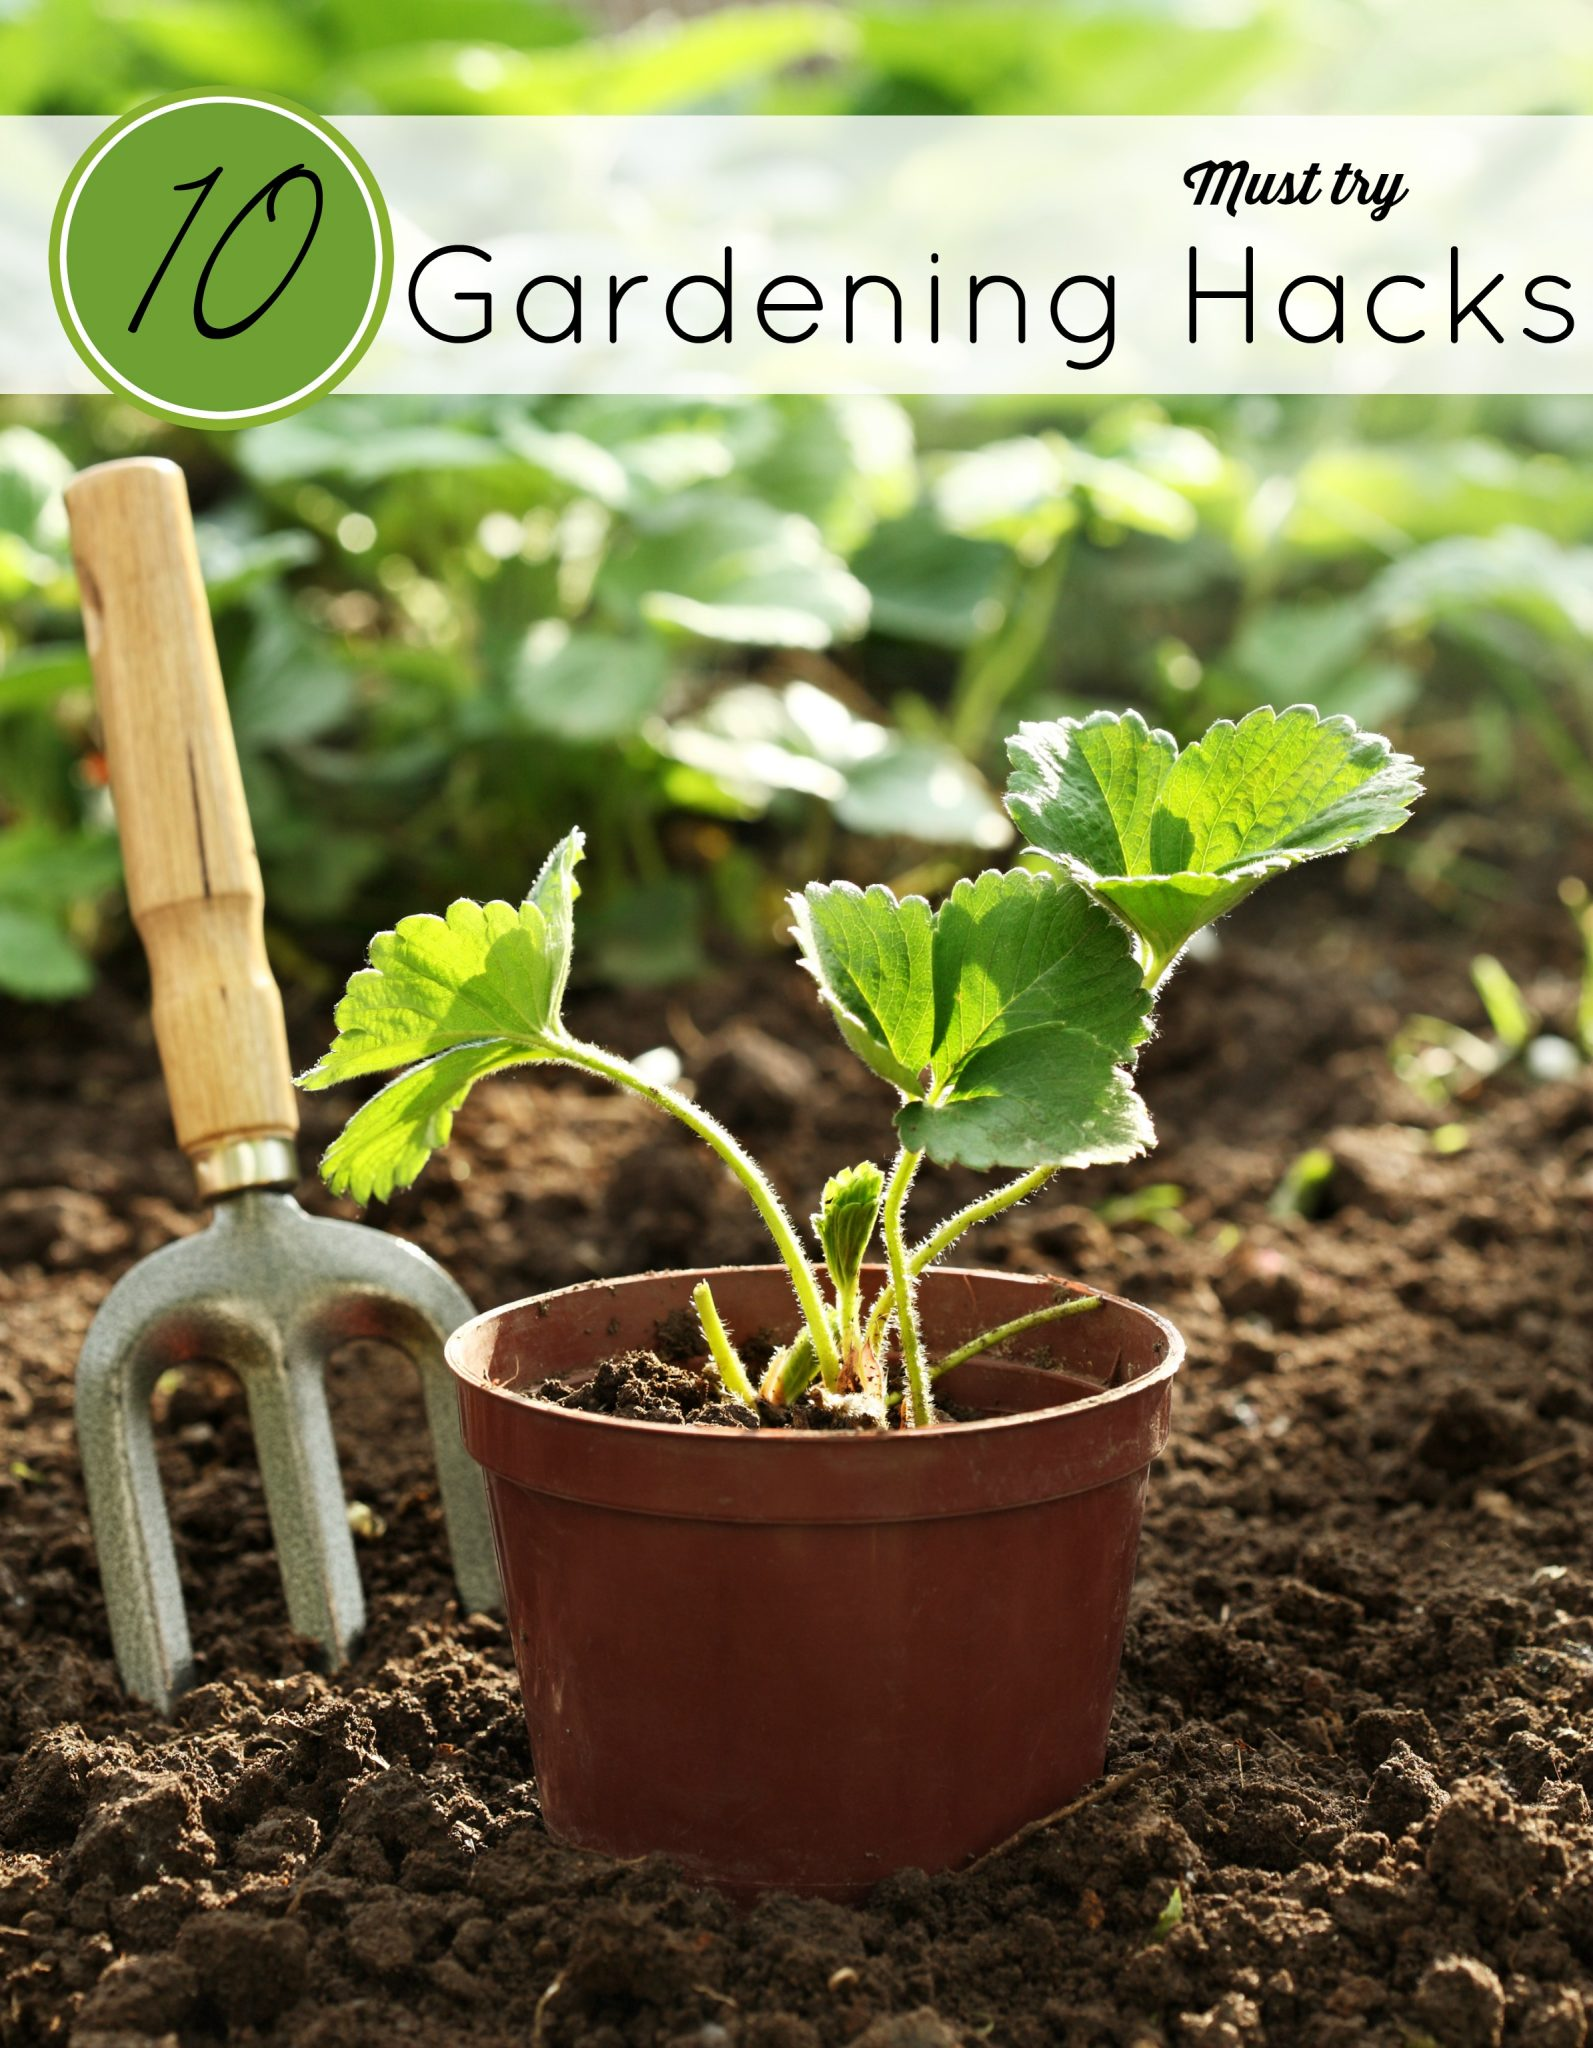 The weather is warm and we are outside getting dirty in the garden. These 10 Gardening Hacks will sure to save you time and a little green.